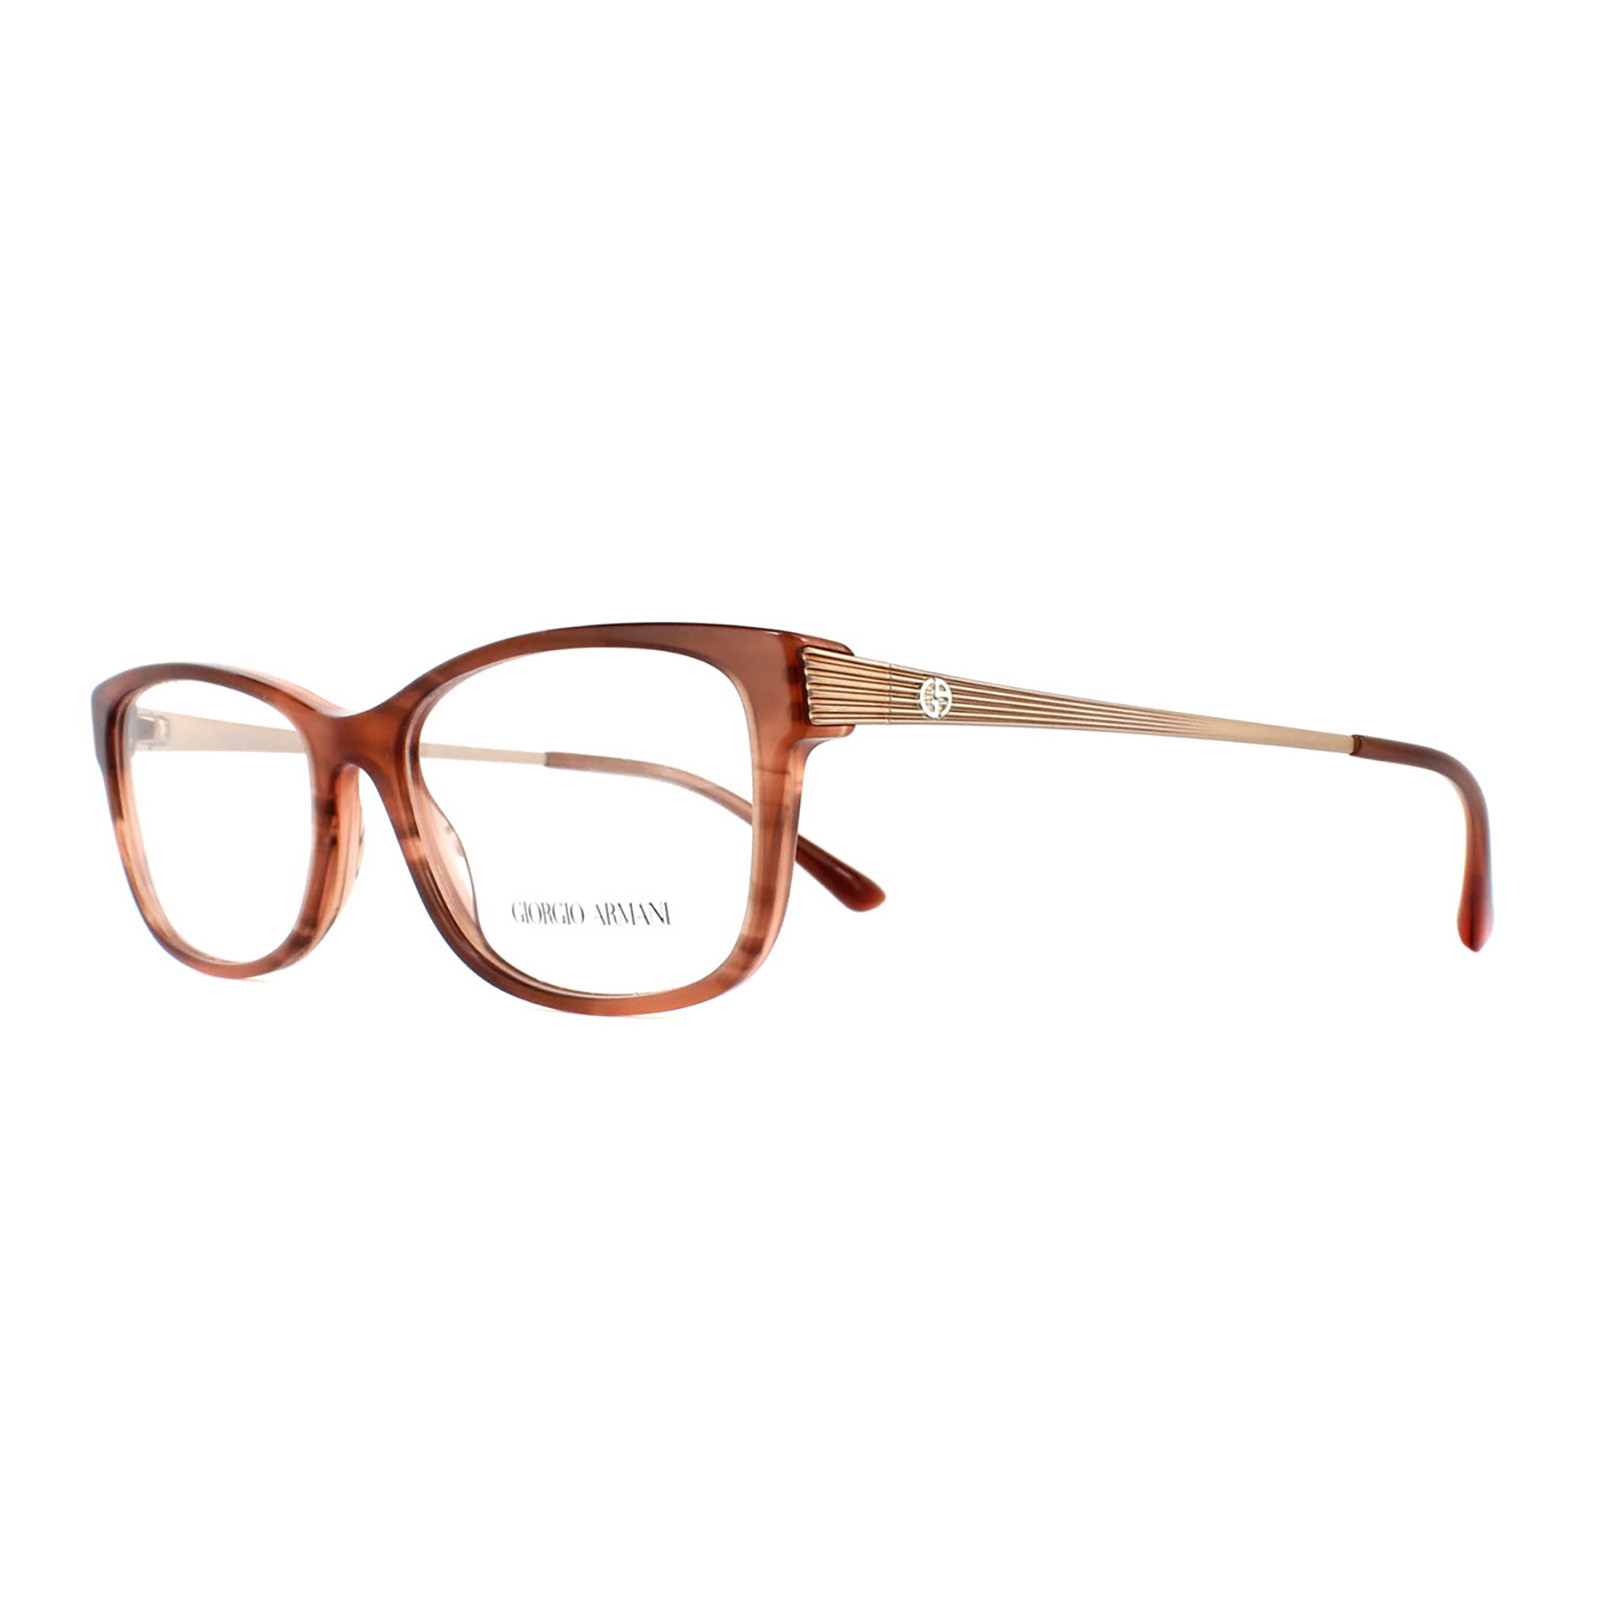 Giorgio Armani Glasses Frames 7098 5488 Striped Brown Womens 54mm | eBay